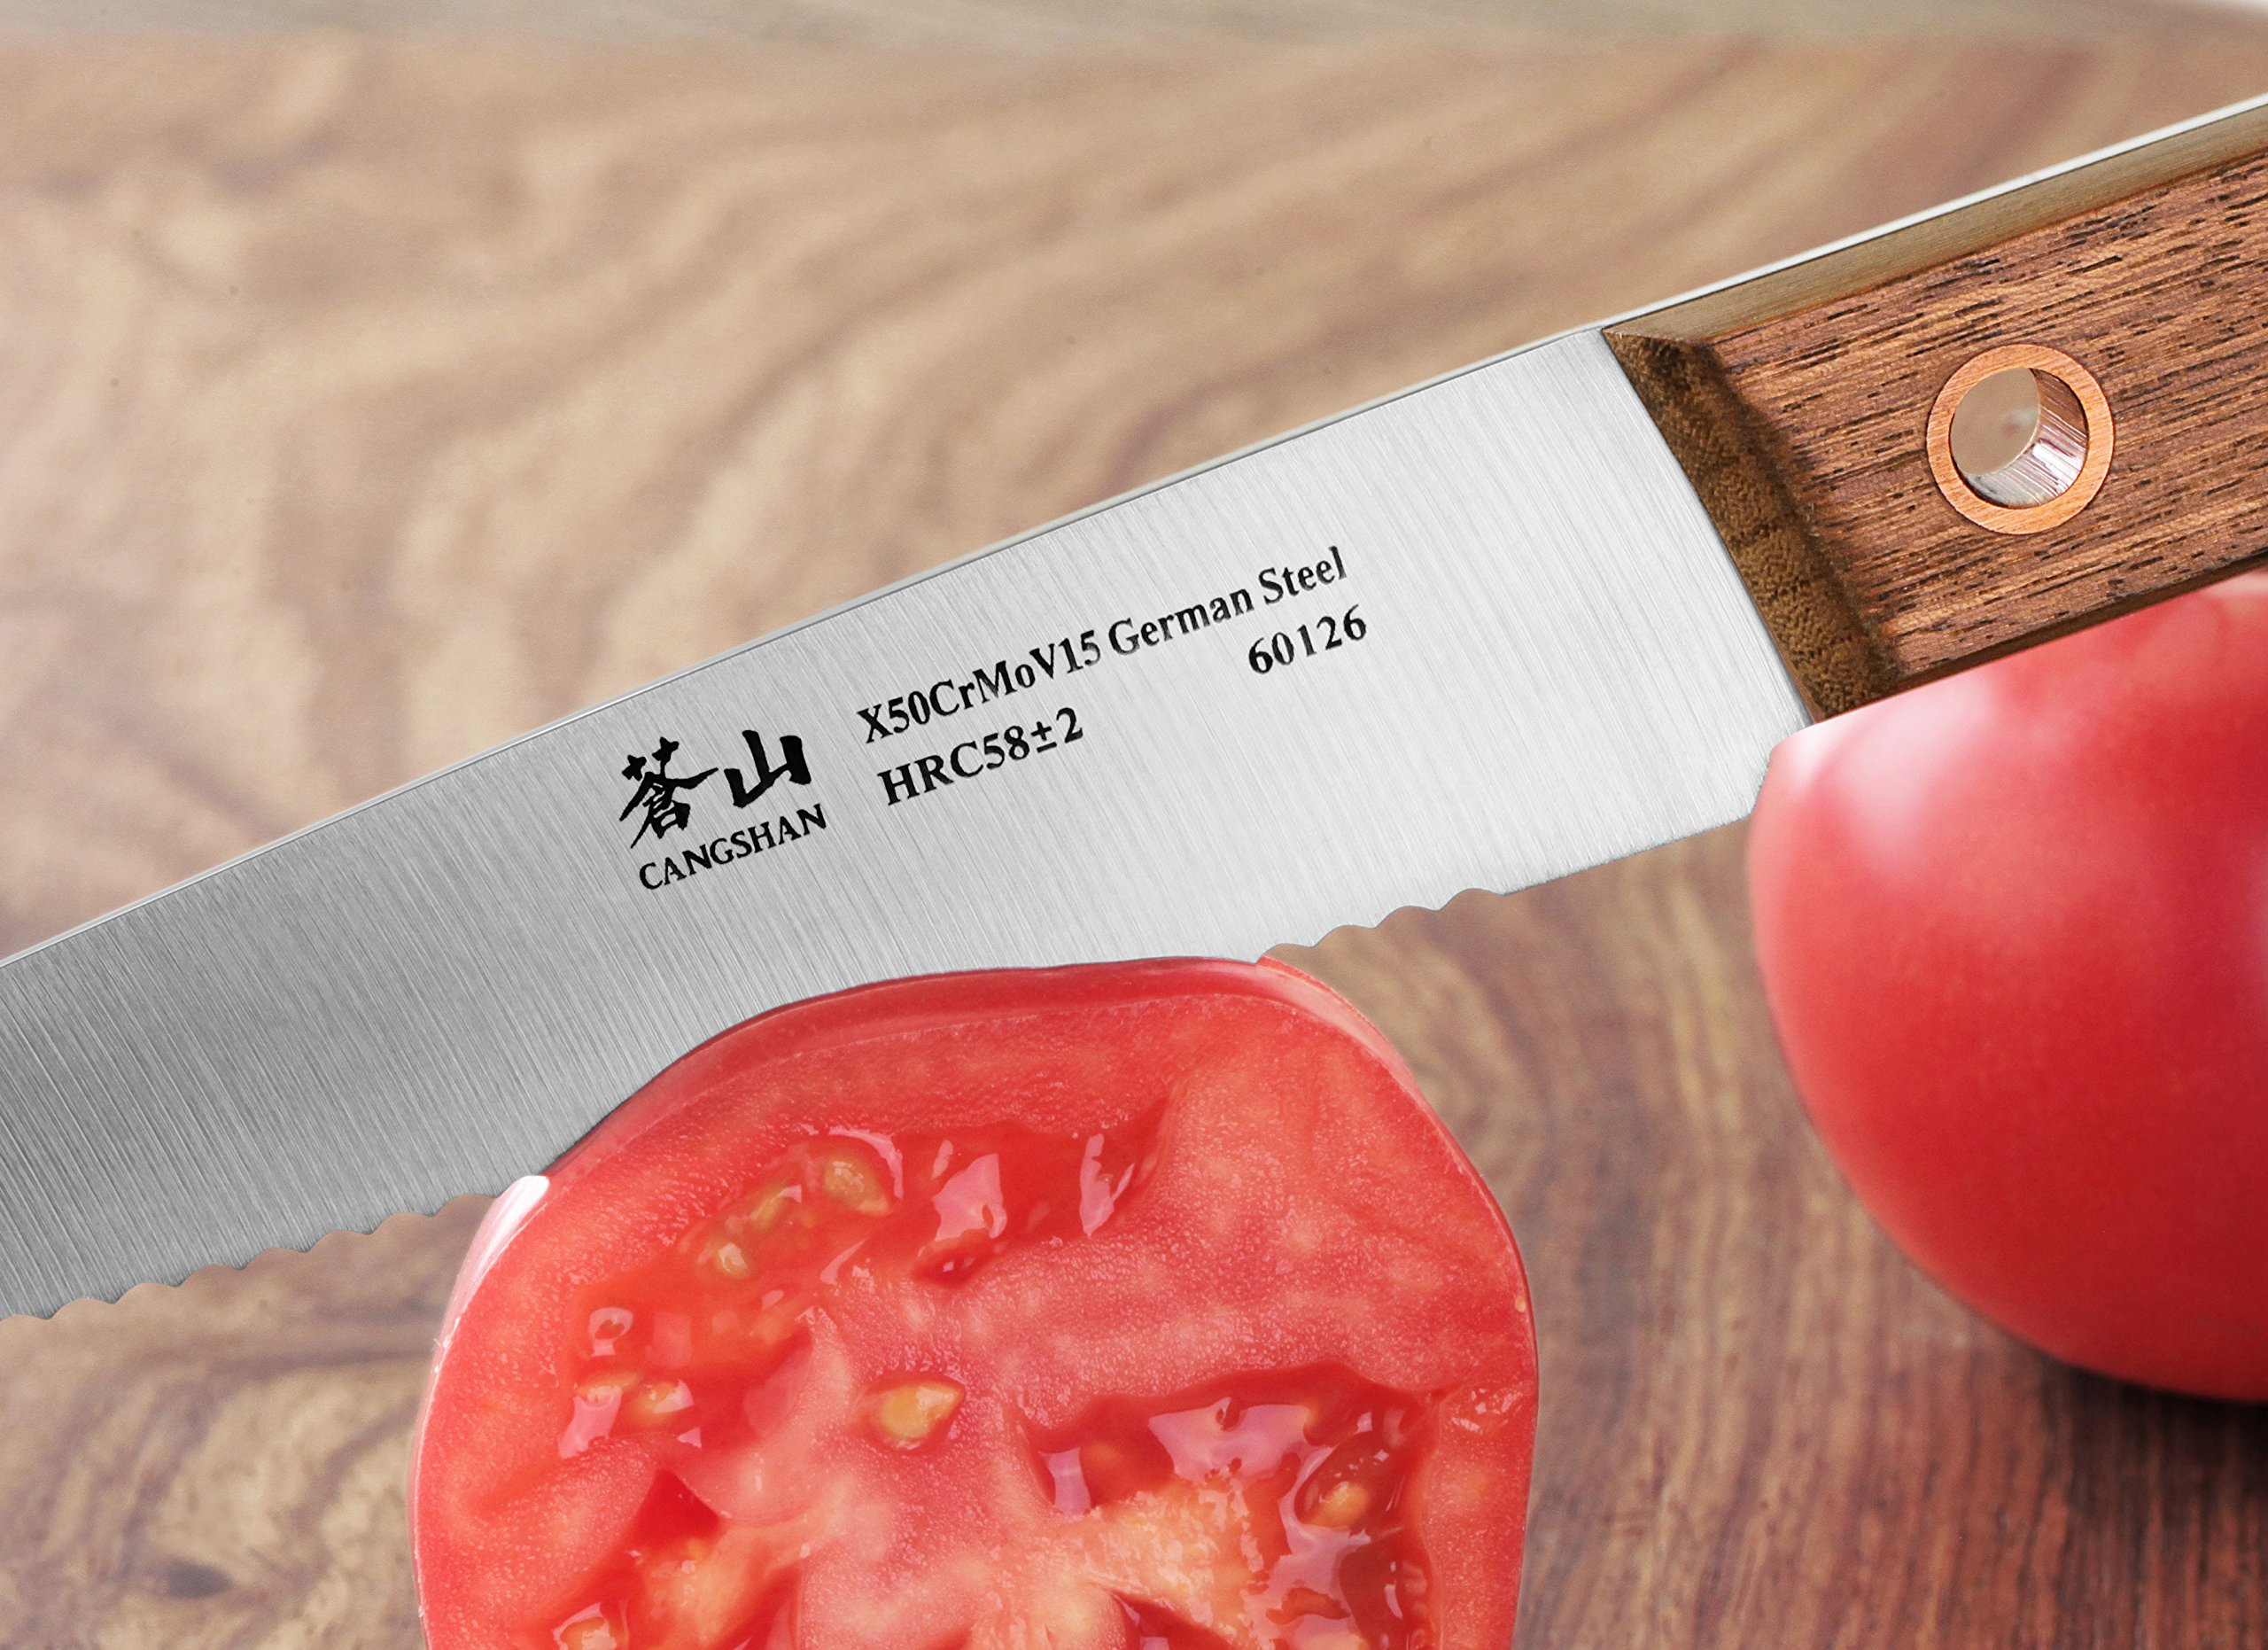 Cangshan W Series 60126 German Steel Serrated Utility Knife, 5-Inch by Cangshan (Image #4)